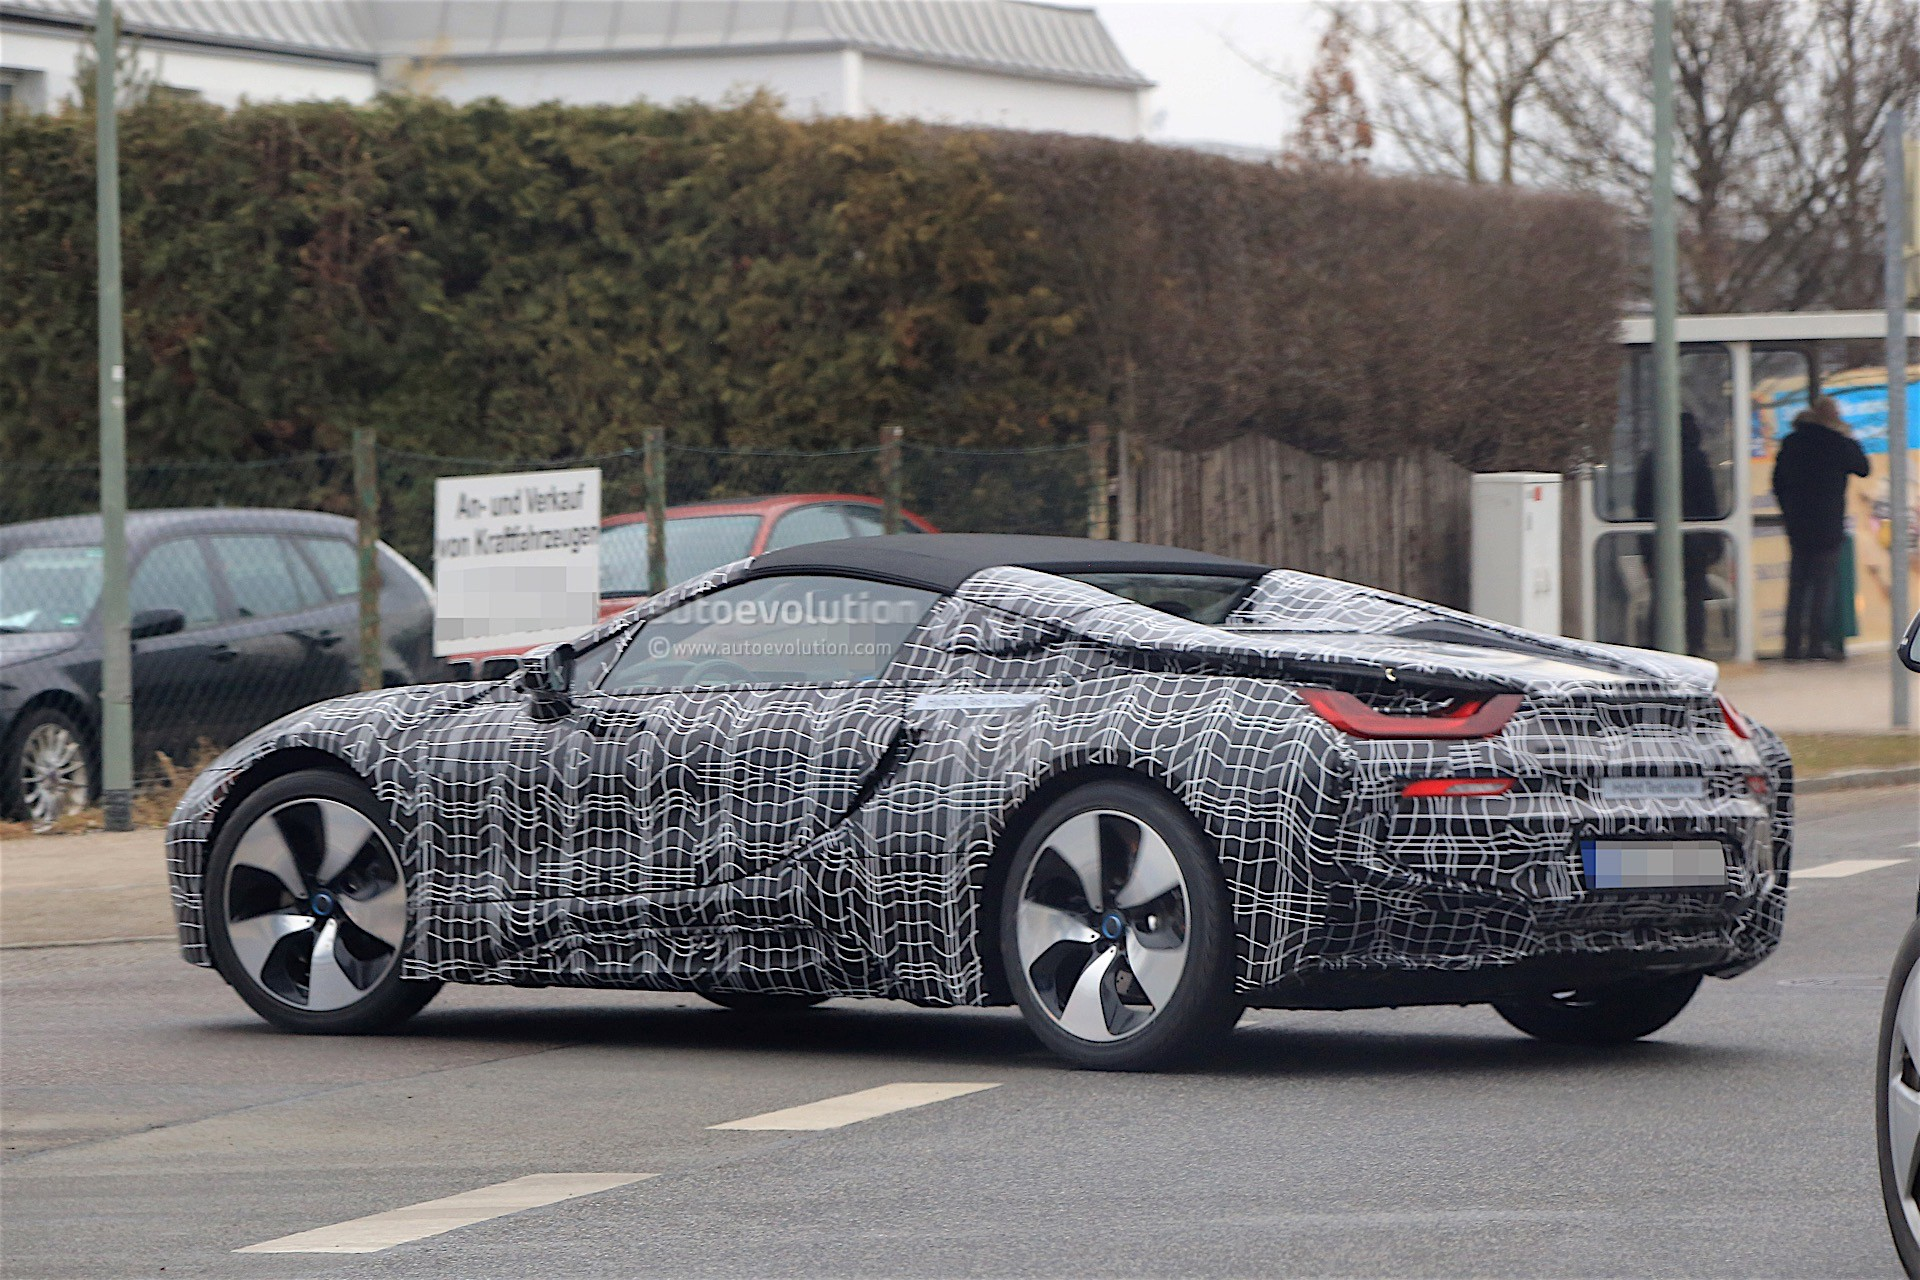 2018 Bmw I8 Spyder Prototype Spied Everything Looks Ready